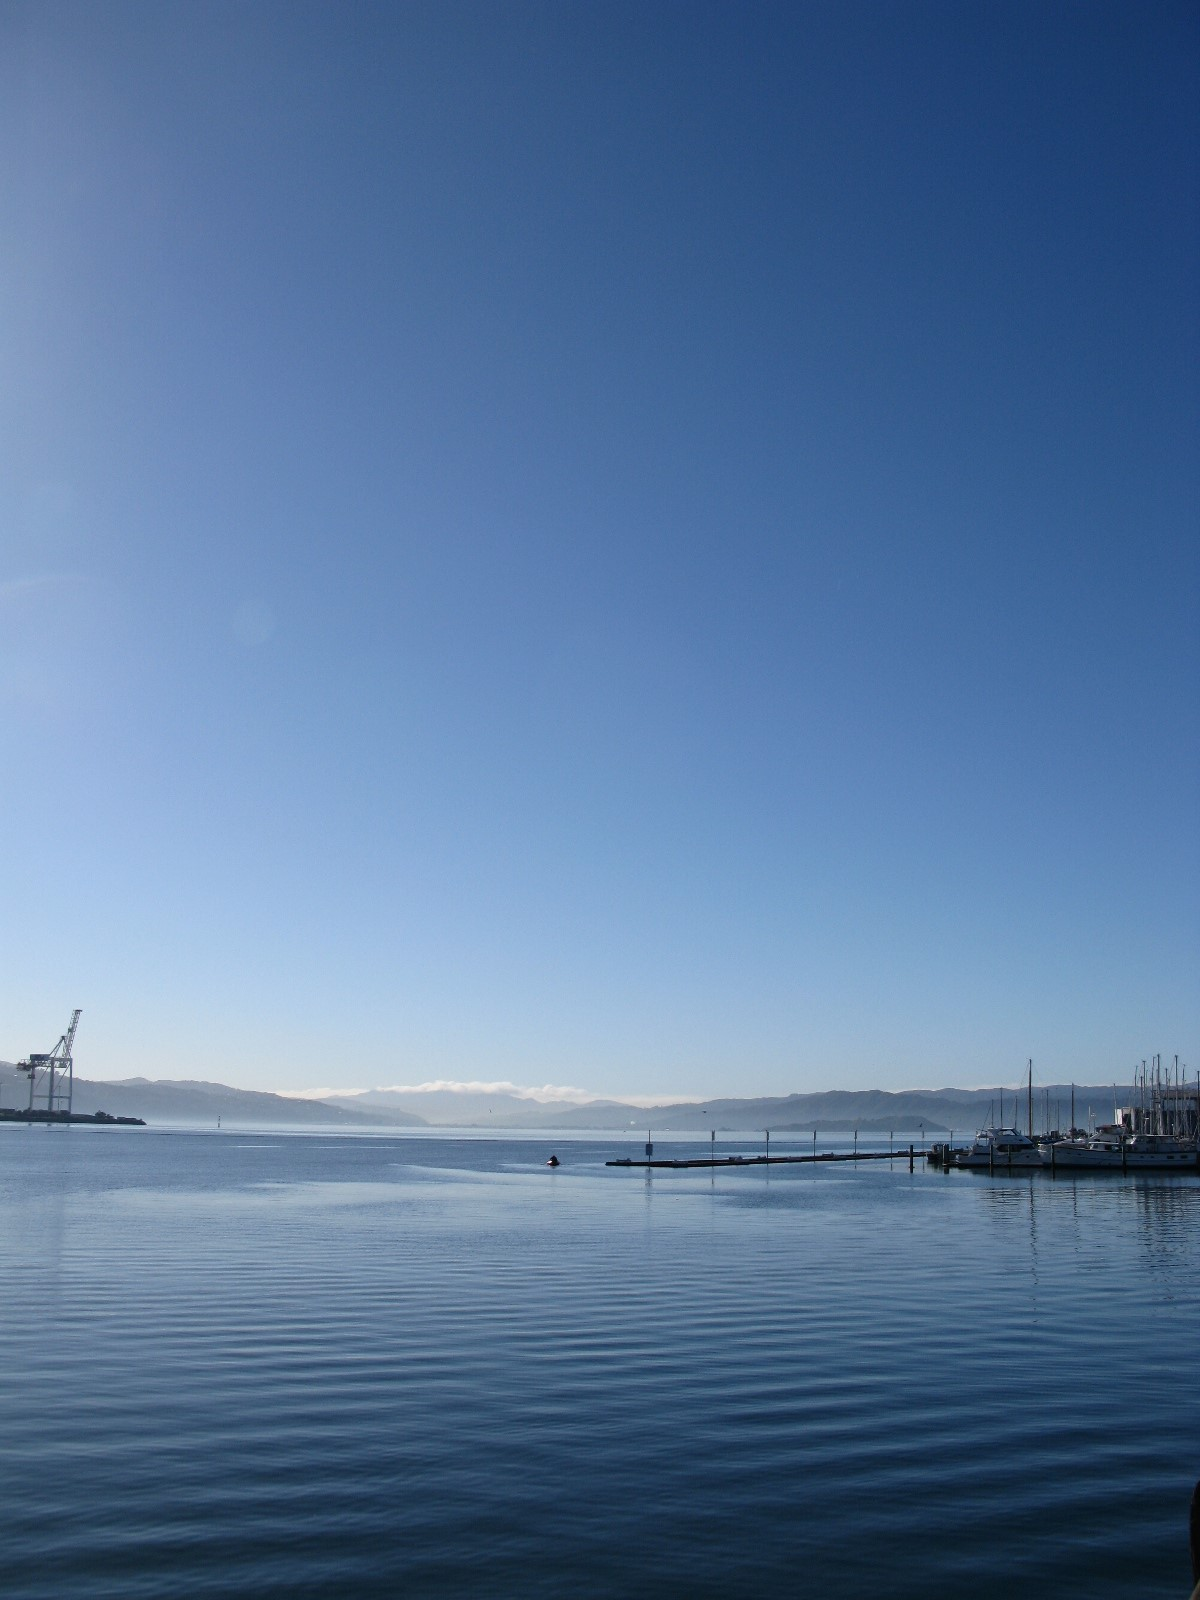 Photograph. Blue upon blue: a clear blue early-morning sky vaults above calm blue ocean in a harbourfront, gently rippling. Wharves peek in at the corners, and the horizon ripples with distant hills and a silver-lined cloudbank.